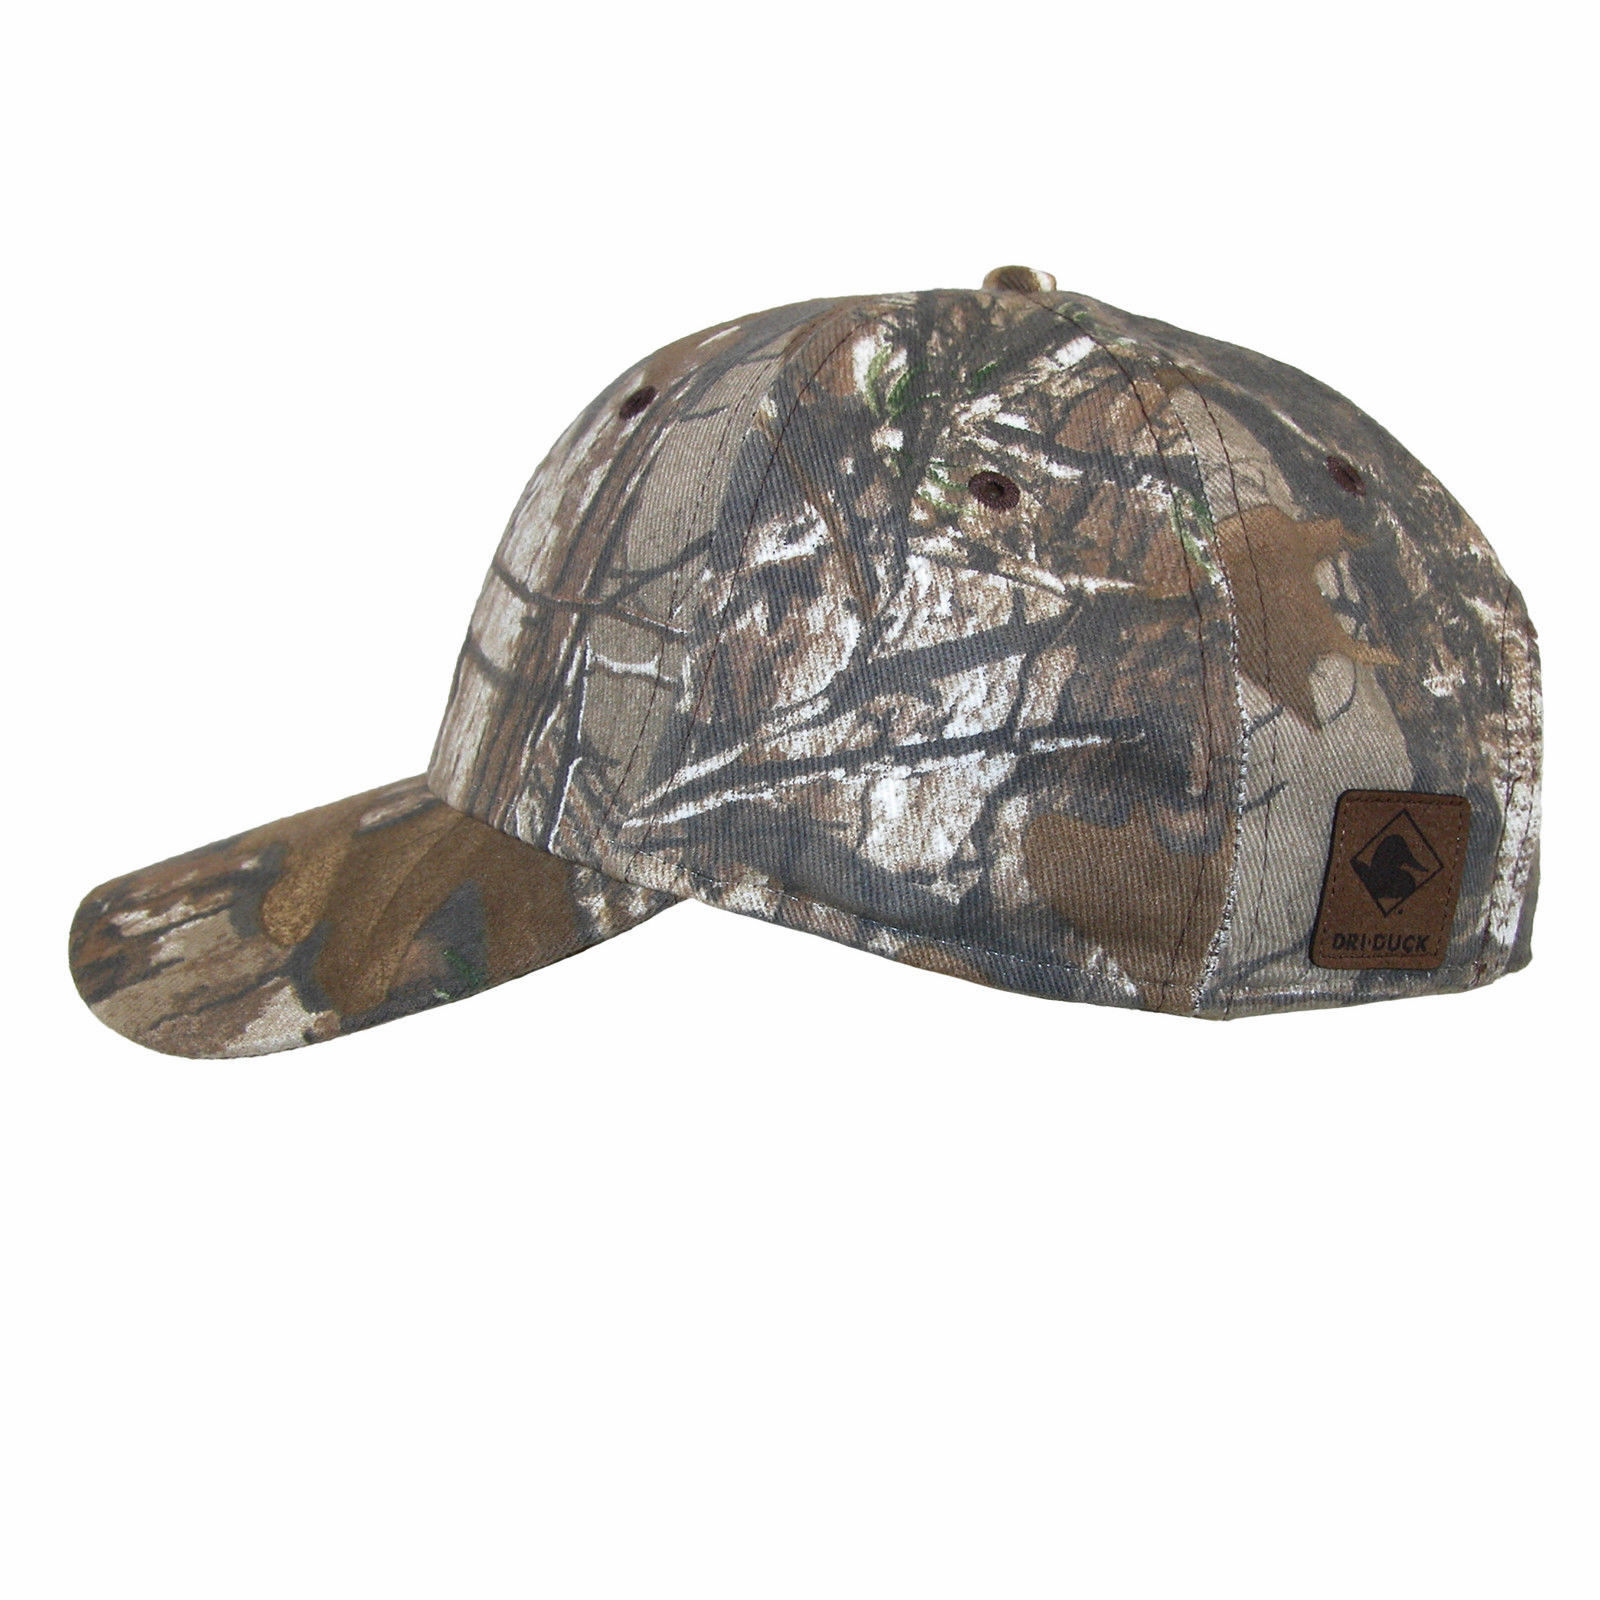 New Realtree Xtra Camo With Buck Baseball Cap